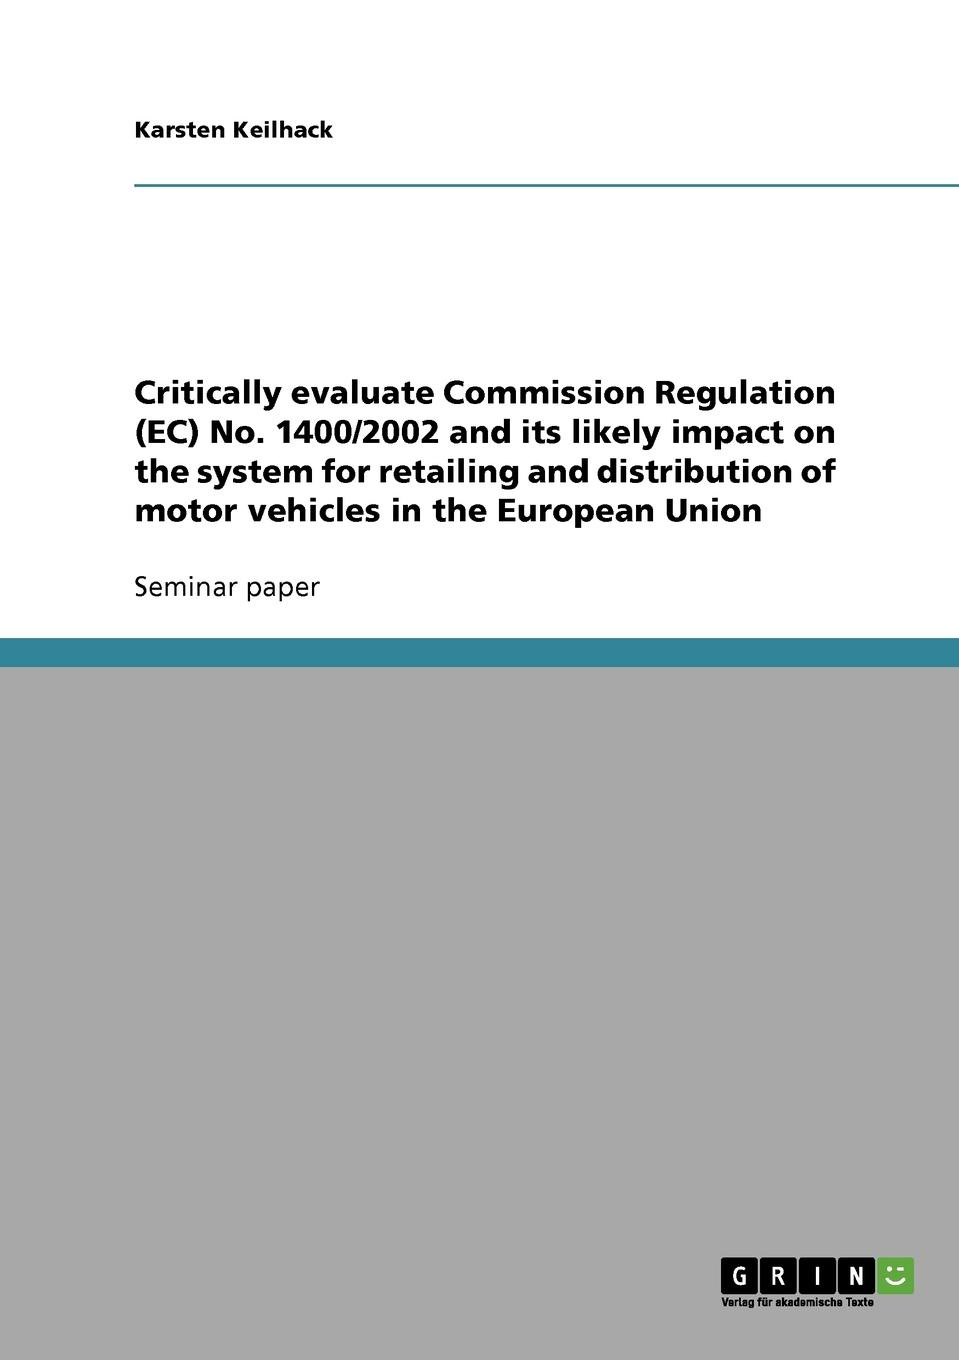 Karsten Keilhack Critically evaluate Commission Regulation (EC) No. 1400/2002 and its likely impact on the system for retailing and distribution of motor vehicles in the European Union claus dieter ehlermann mel marquis european competition law annual 2007